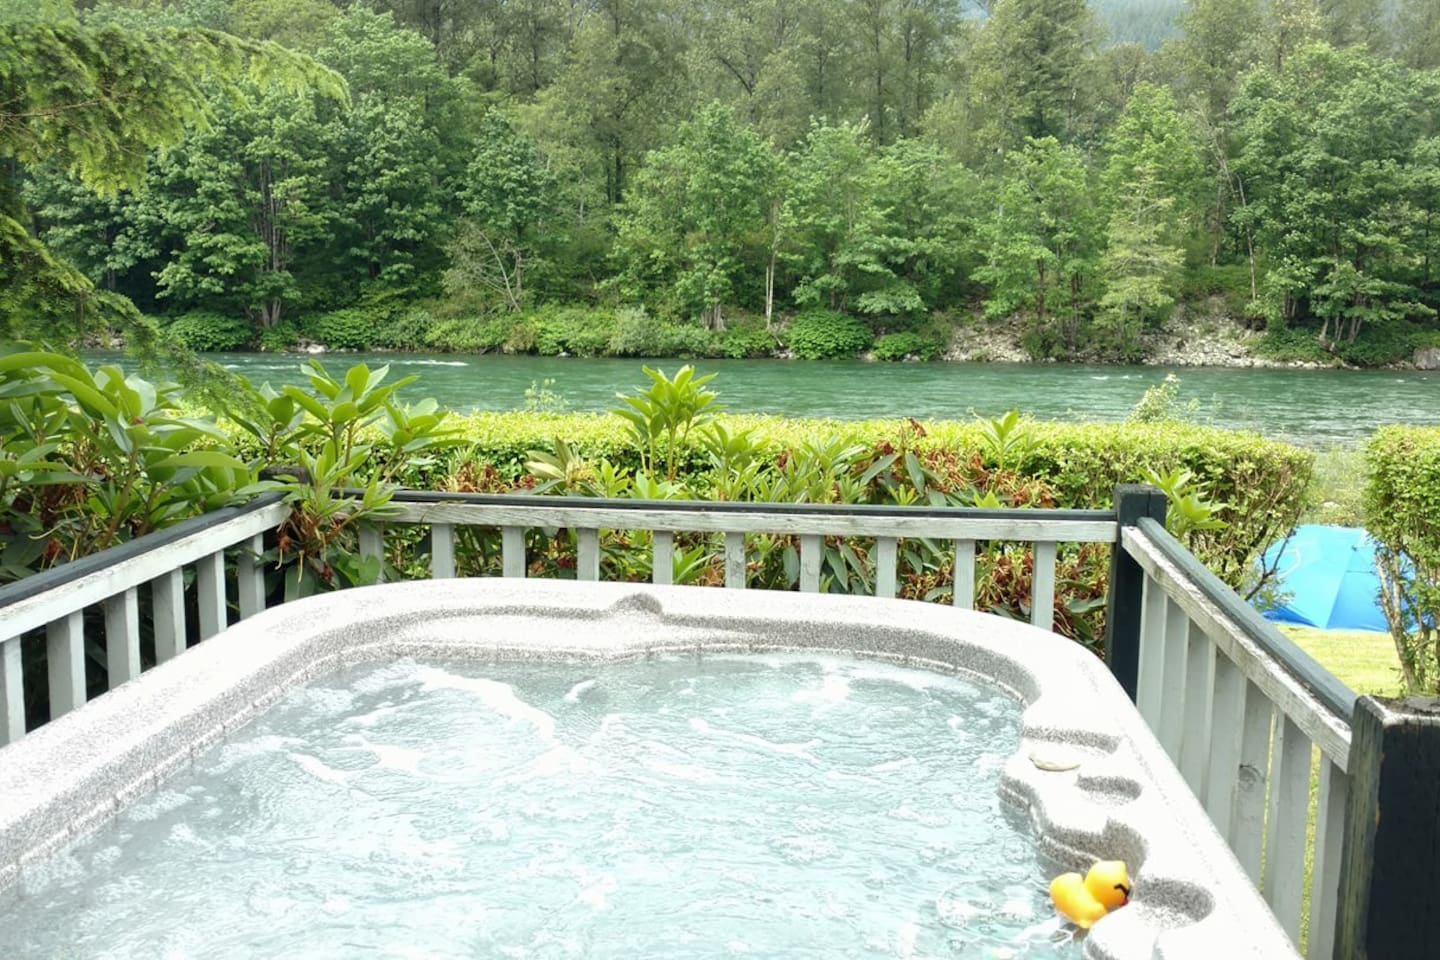 View from the Hot Tub off the Back Deck